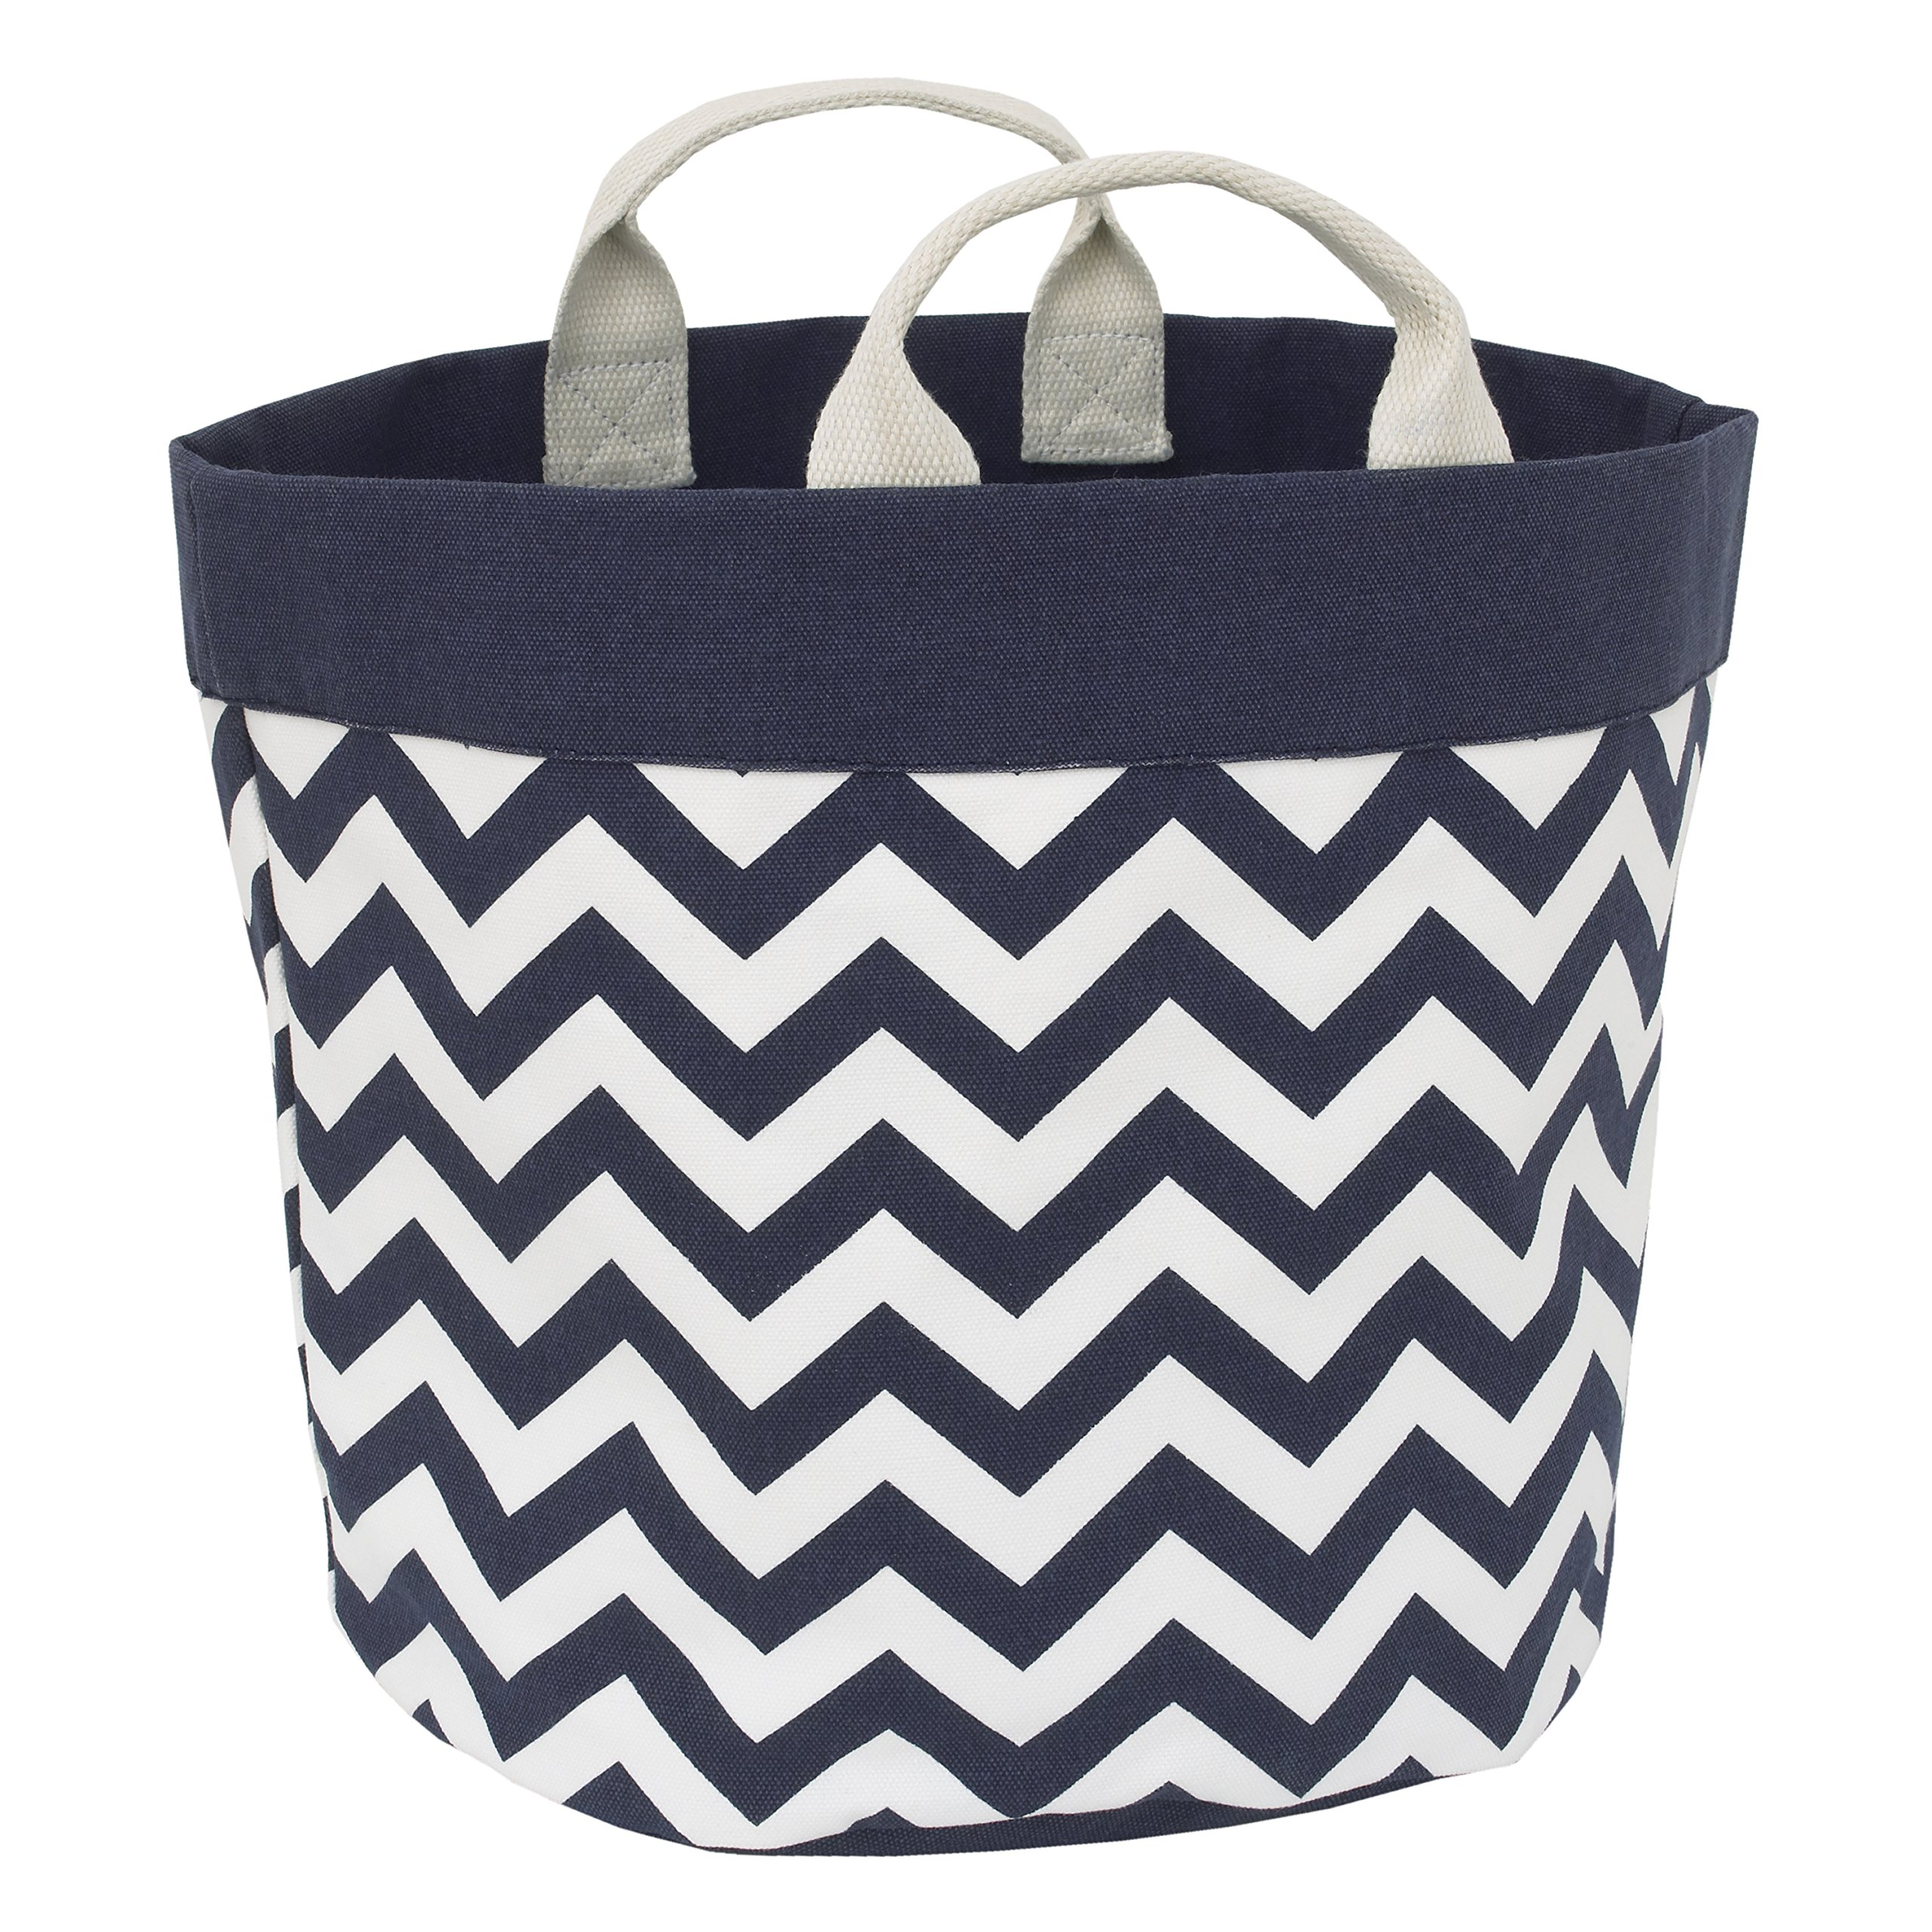 Little Love by NoJo Chevron Reversible Storage Tote with Handles, Navy/White